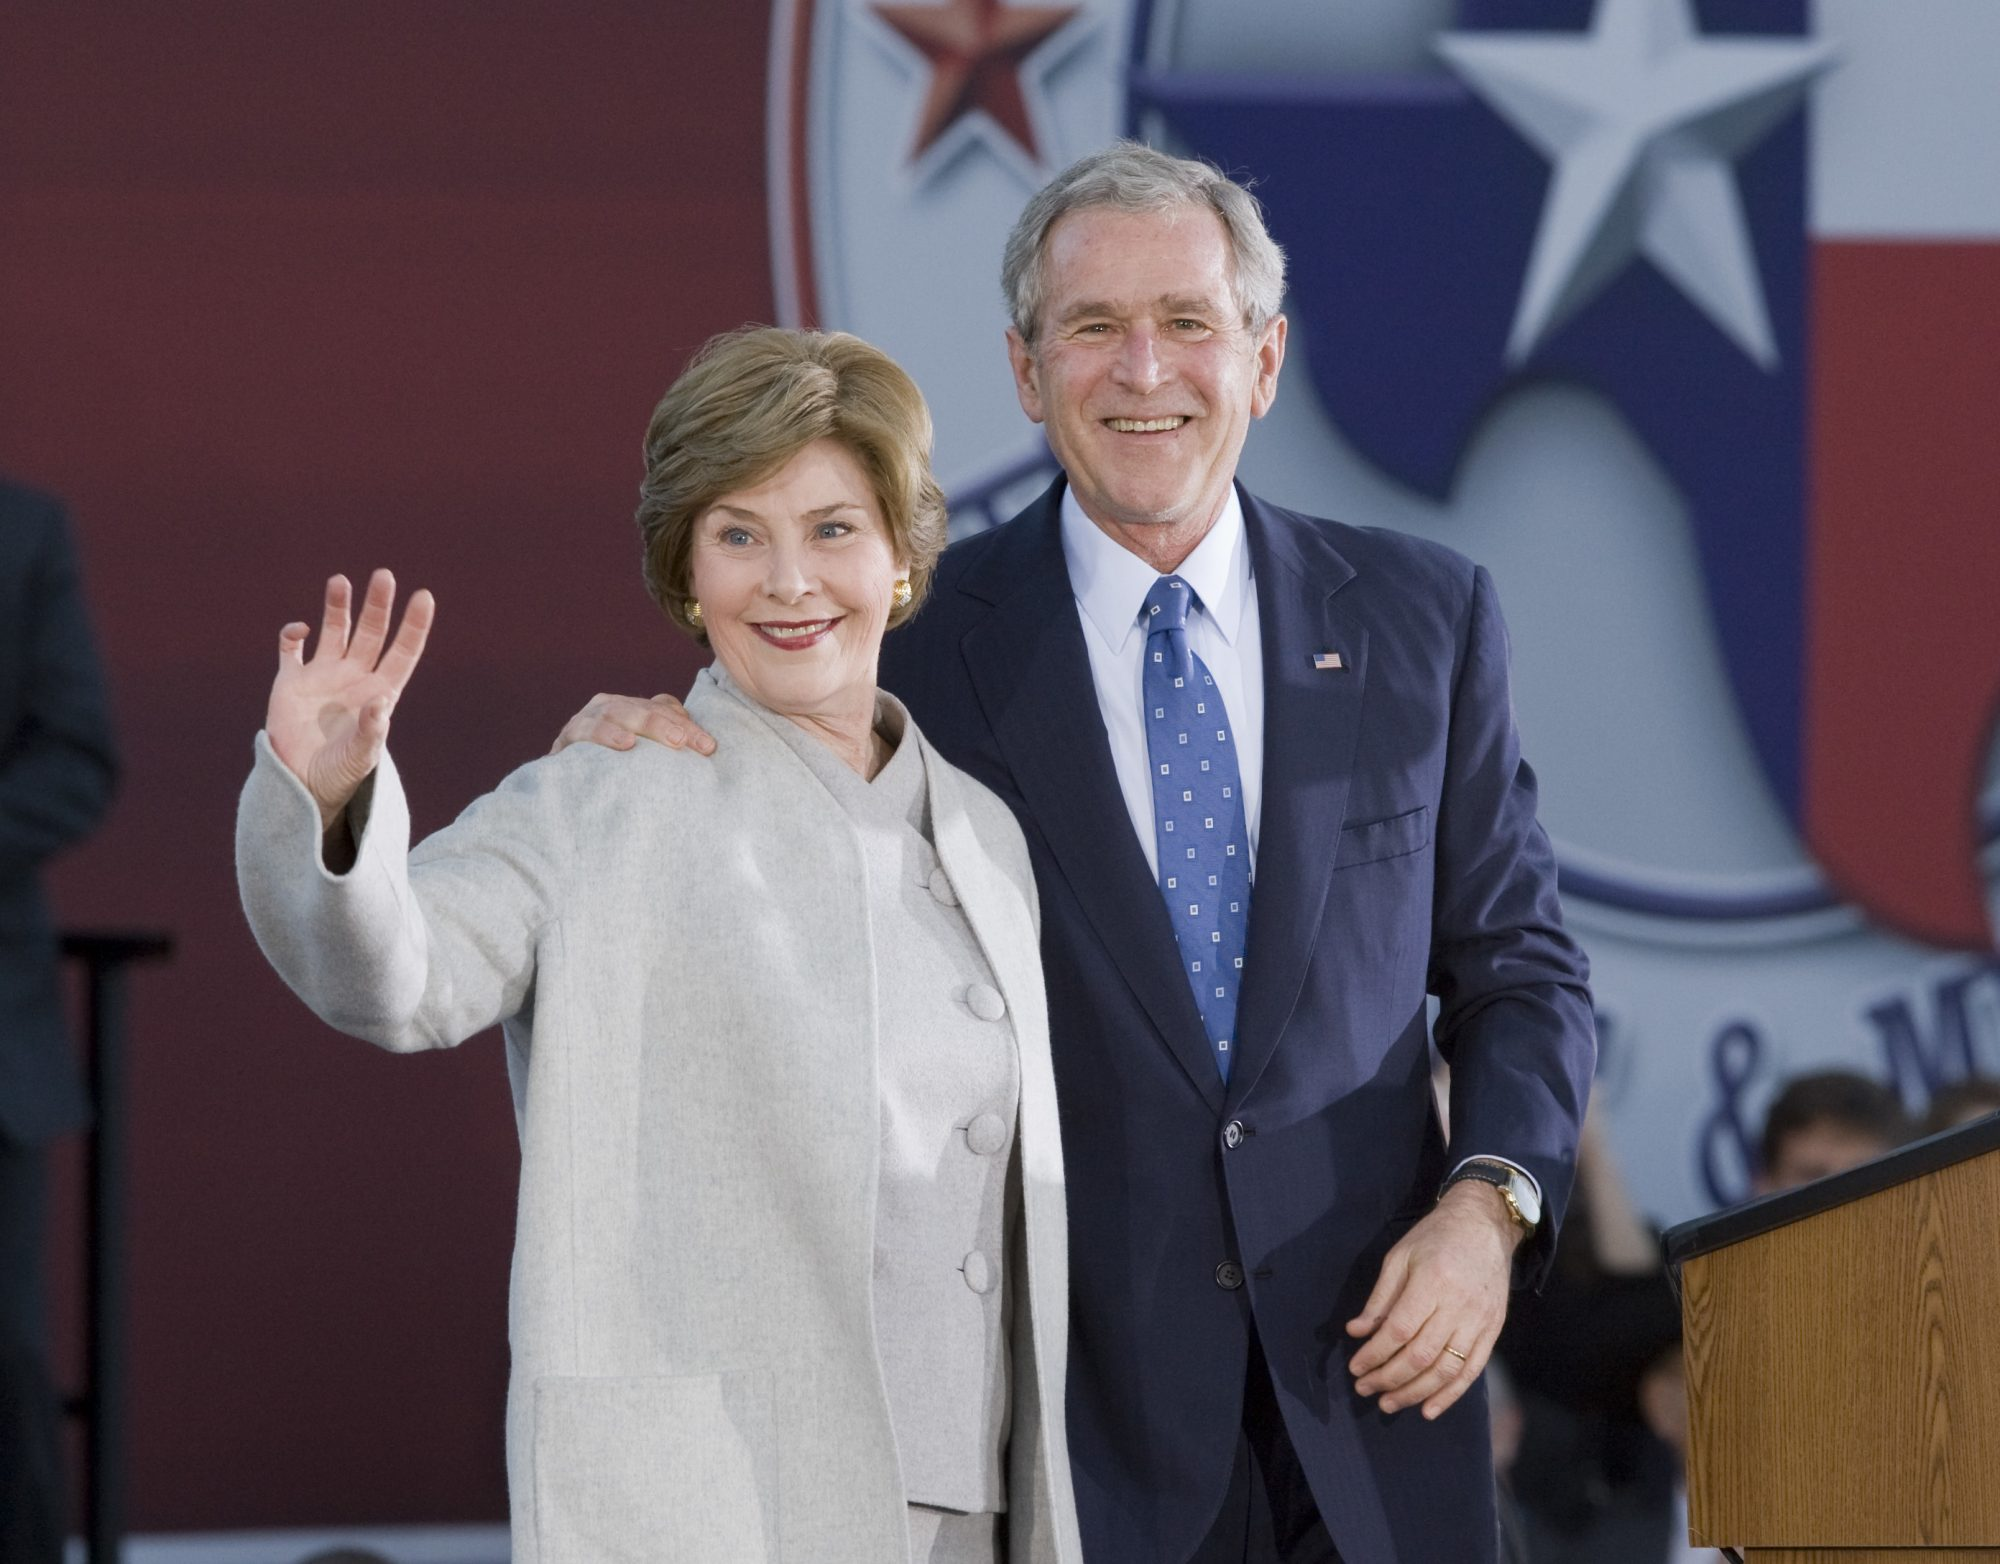 George W Bush Wishes Love Of His Life Wife Laura A Happy 40th